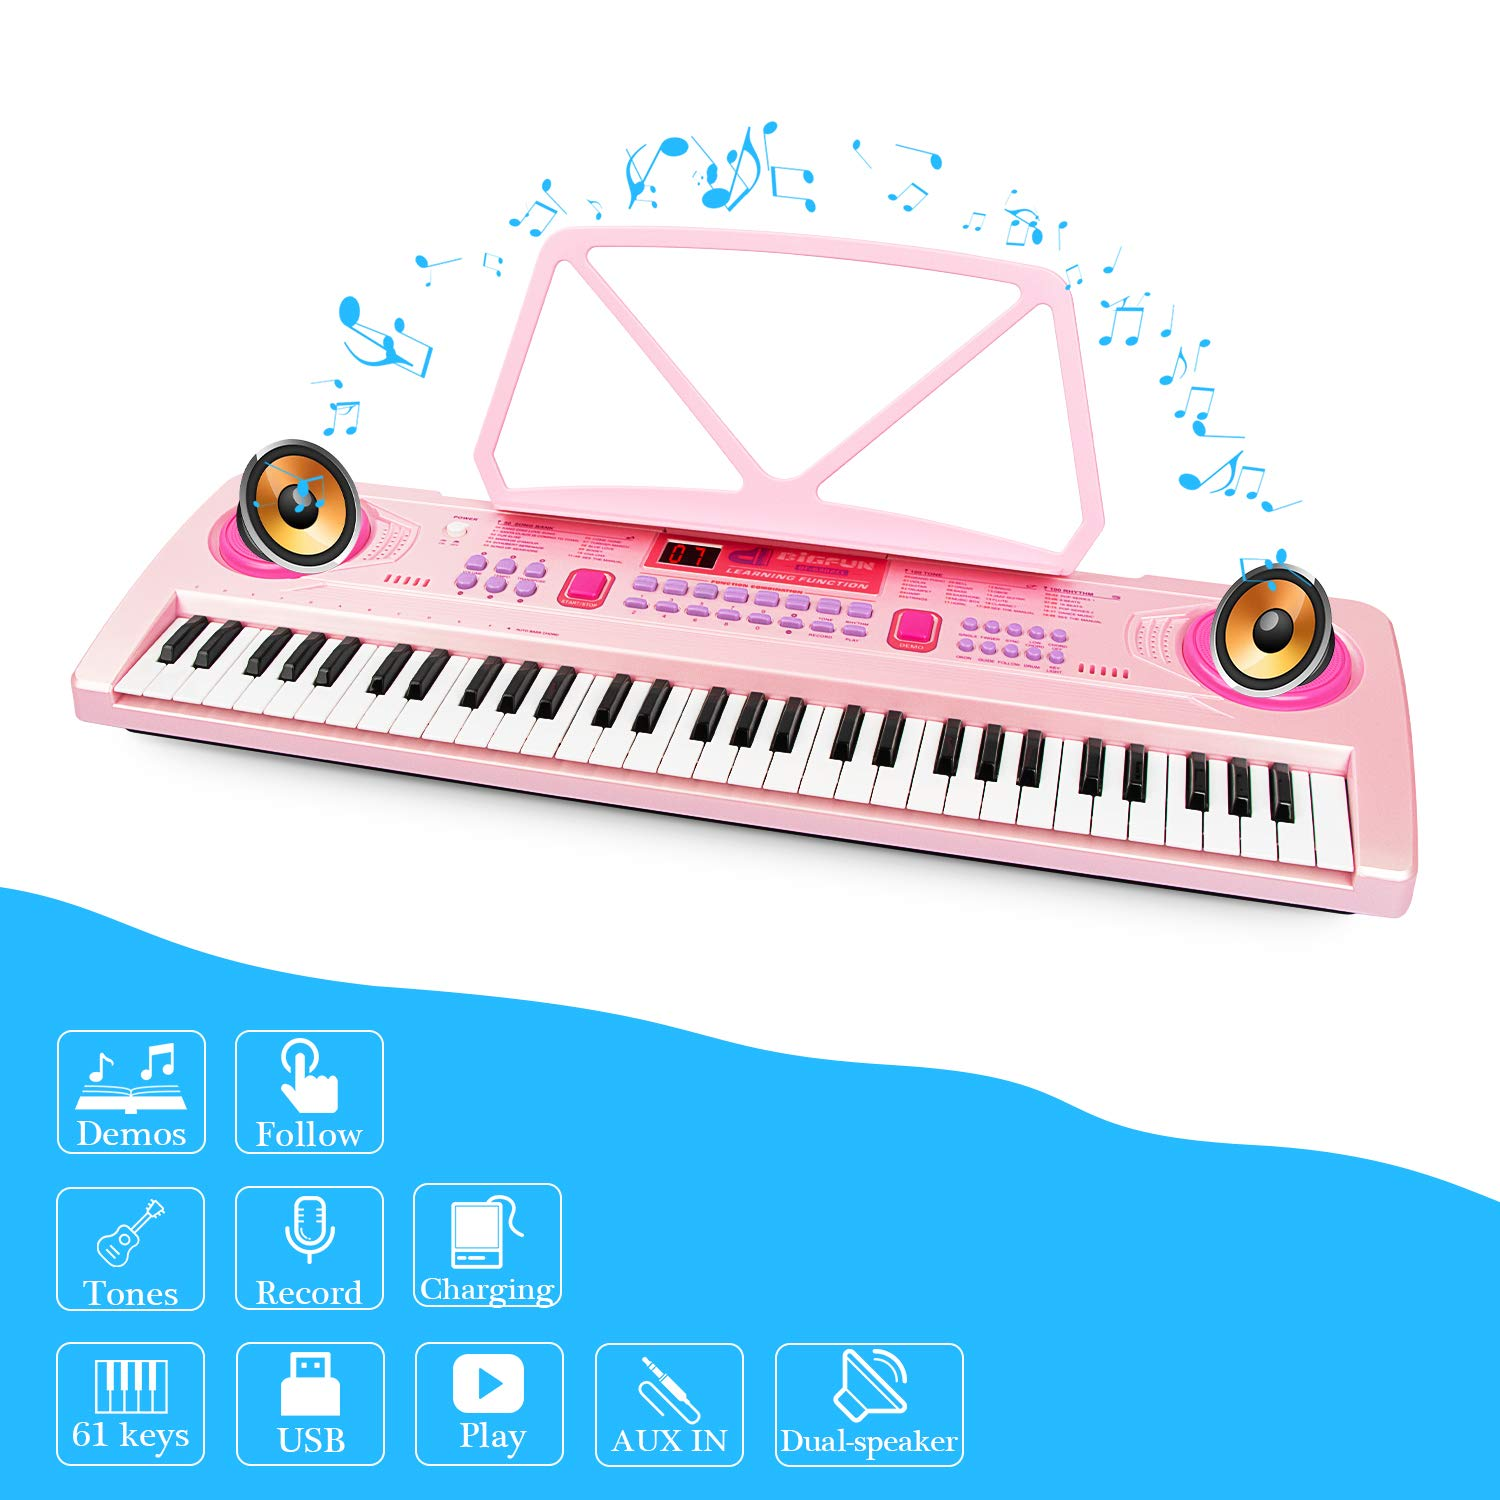 aPerfectLife 25'' Charging Piano Keyboard for Kids 61 Keys Multifunction Portable Piano Electronic Keyboard Music Instrument for Kids Early Learning Educational Toy (Pink) by aPerfectLife (Image #2)